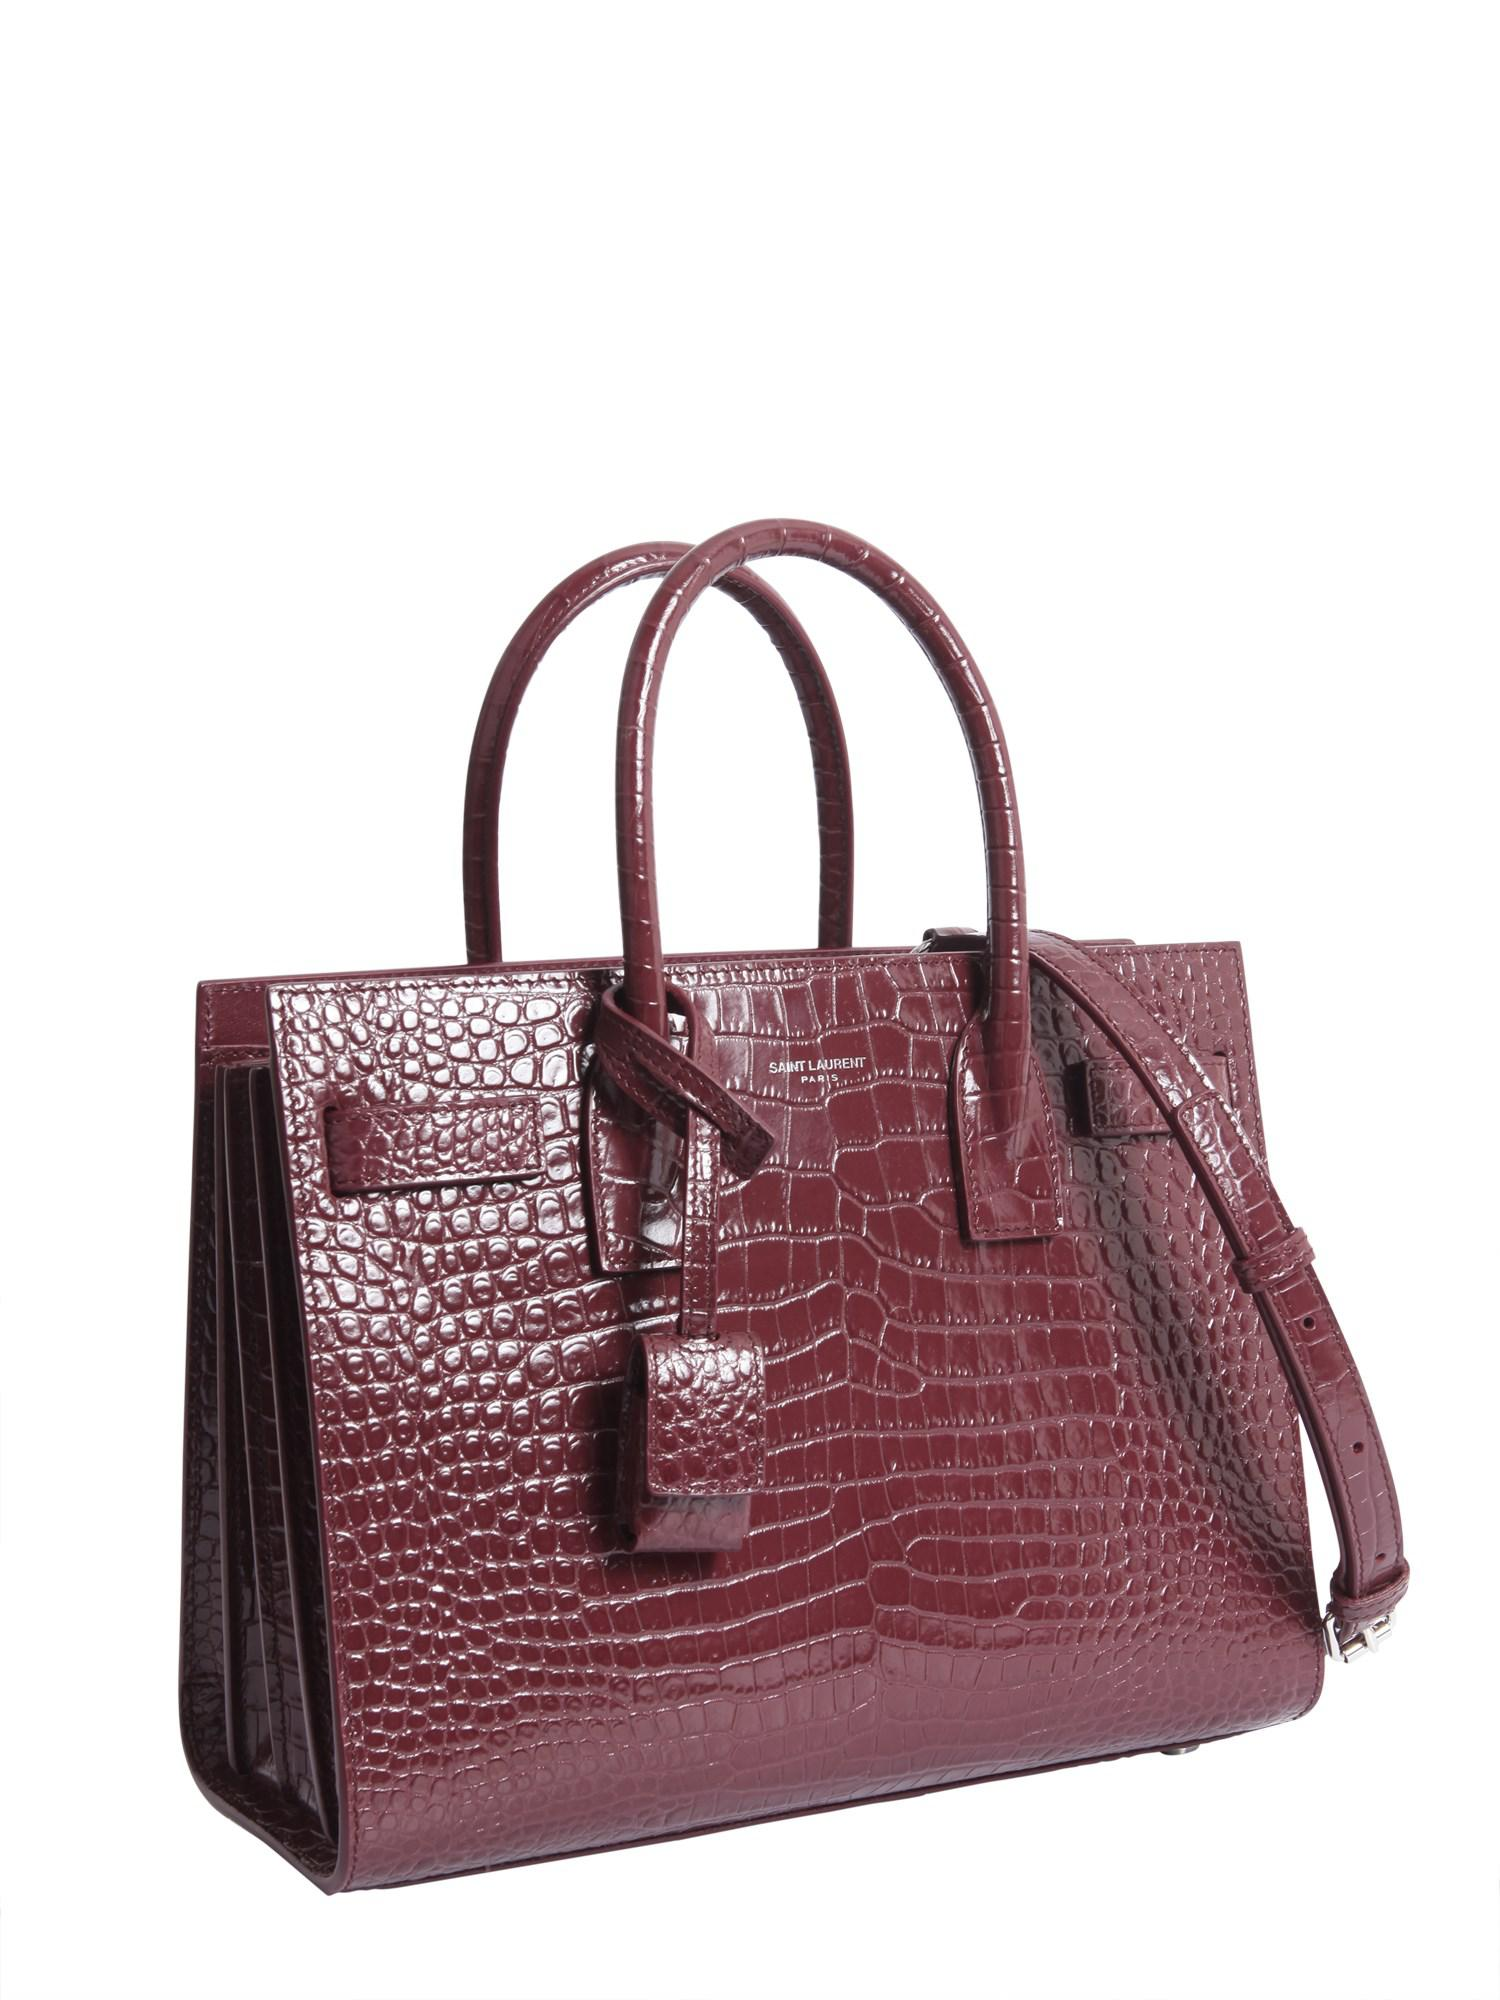 b227891280 Saint Laurent Multicolor Small Sac De Jour Souple Bag In Crocodile Embossed  Leather